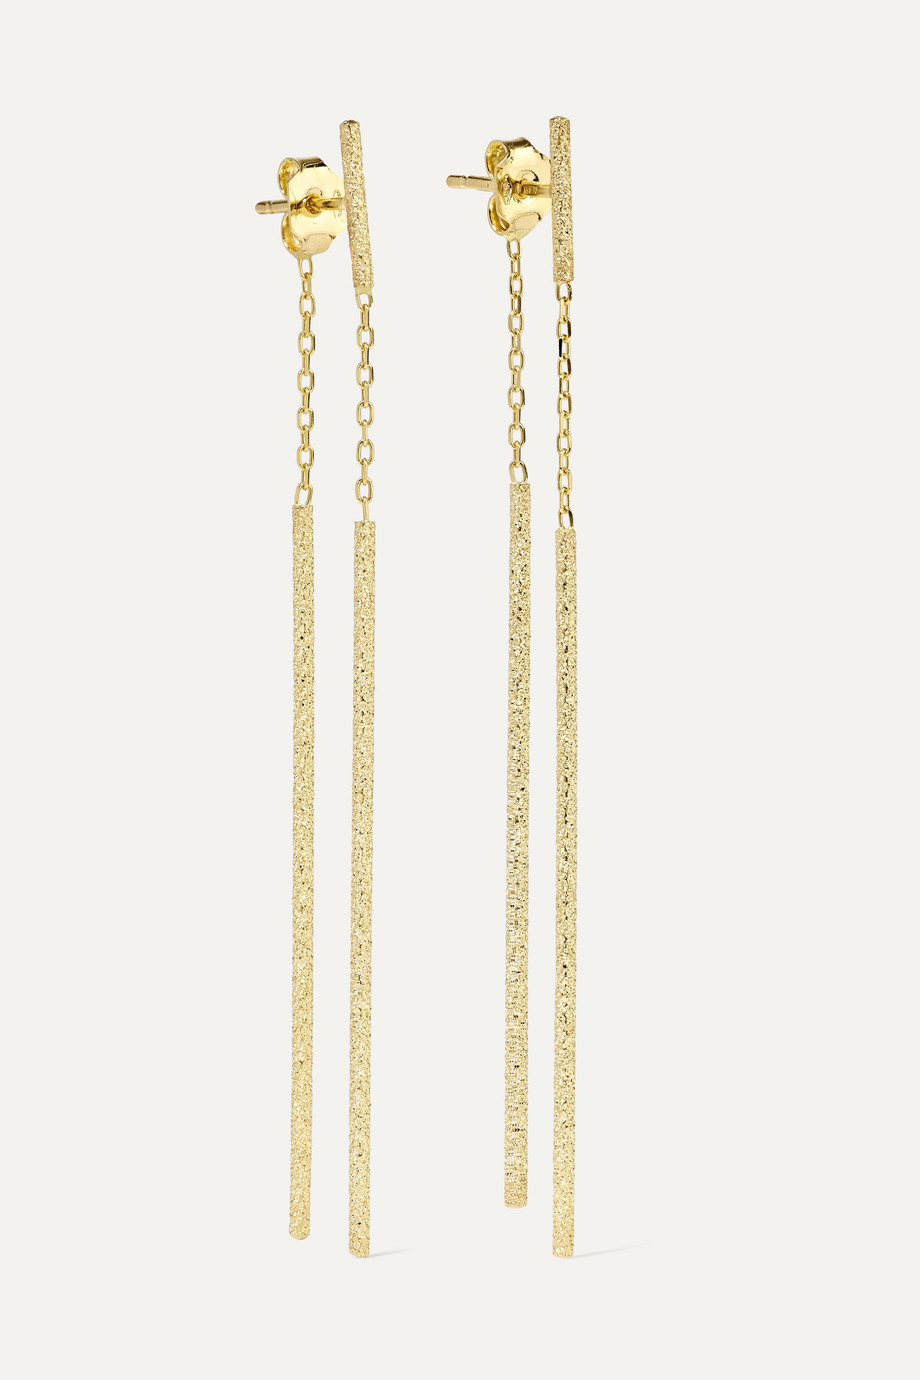 Carolina Bucci Double Magic Wand 18K 黄金耳环